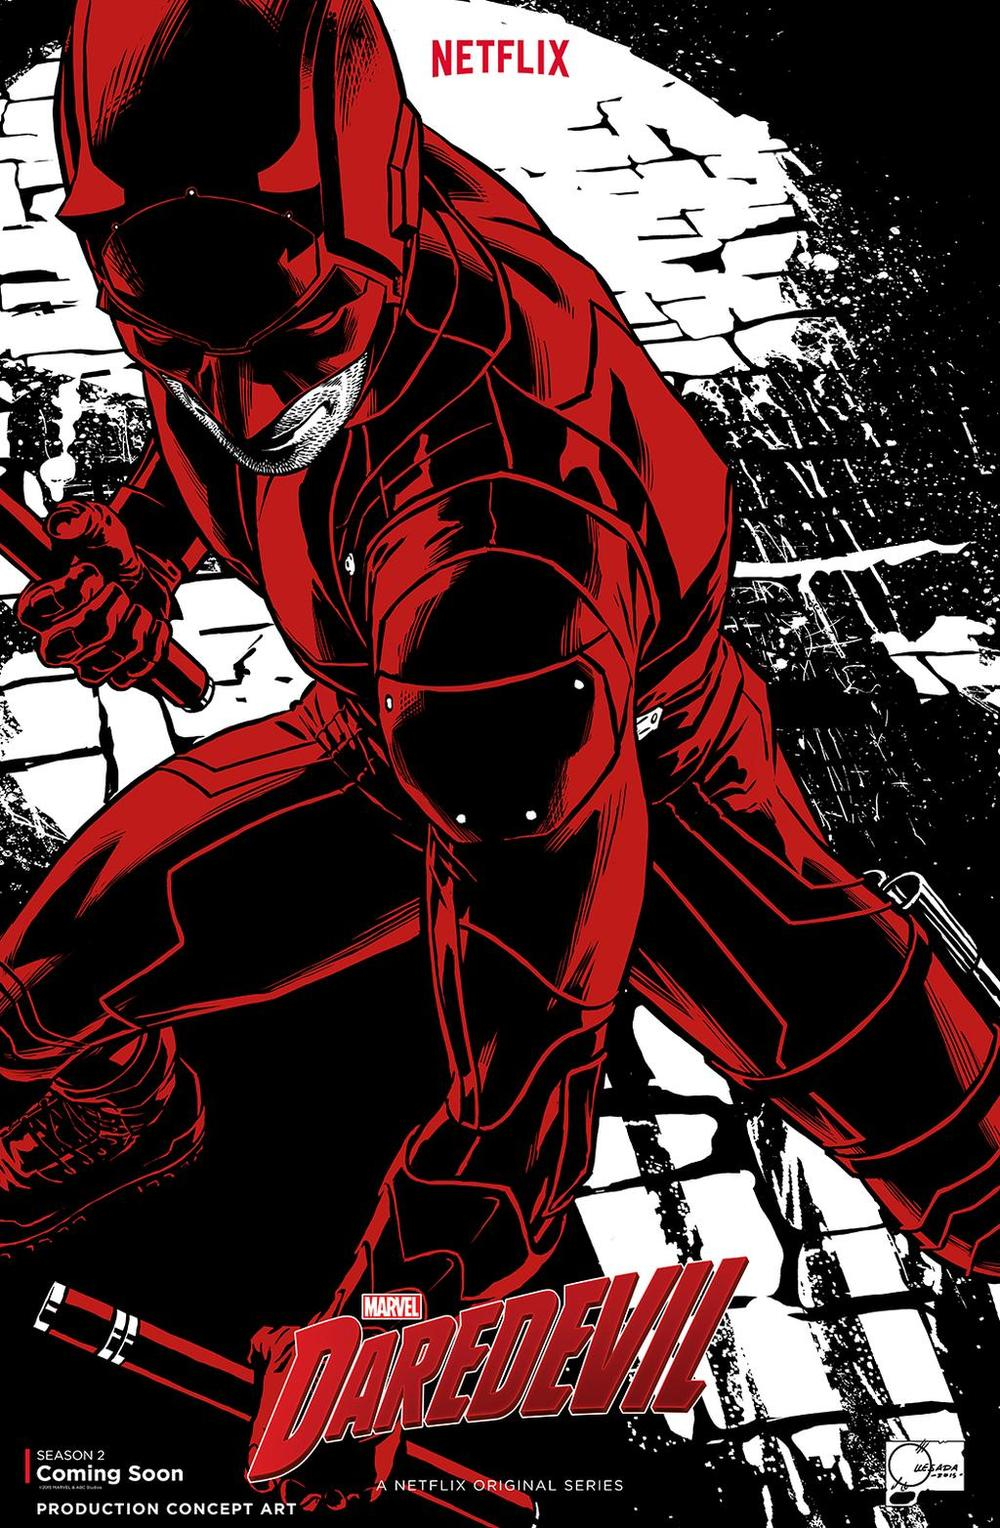 daredevil-season-2-teaser-poster-unveiled.jpeg